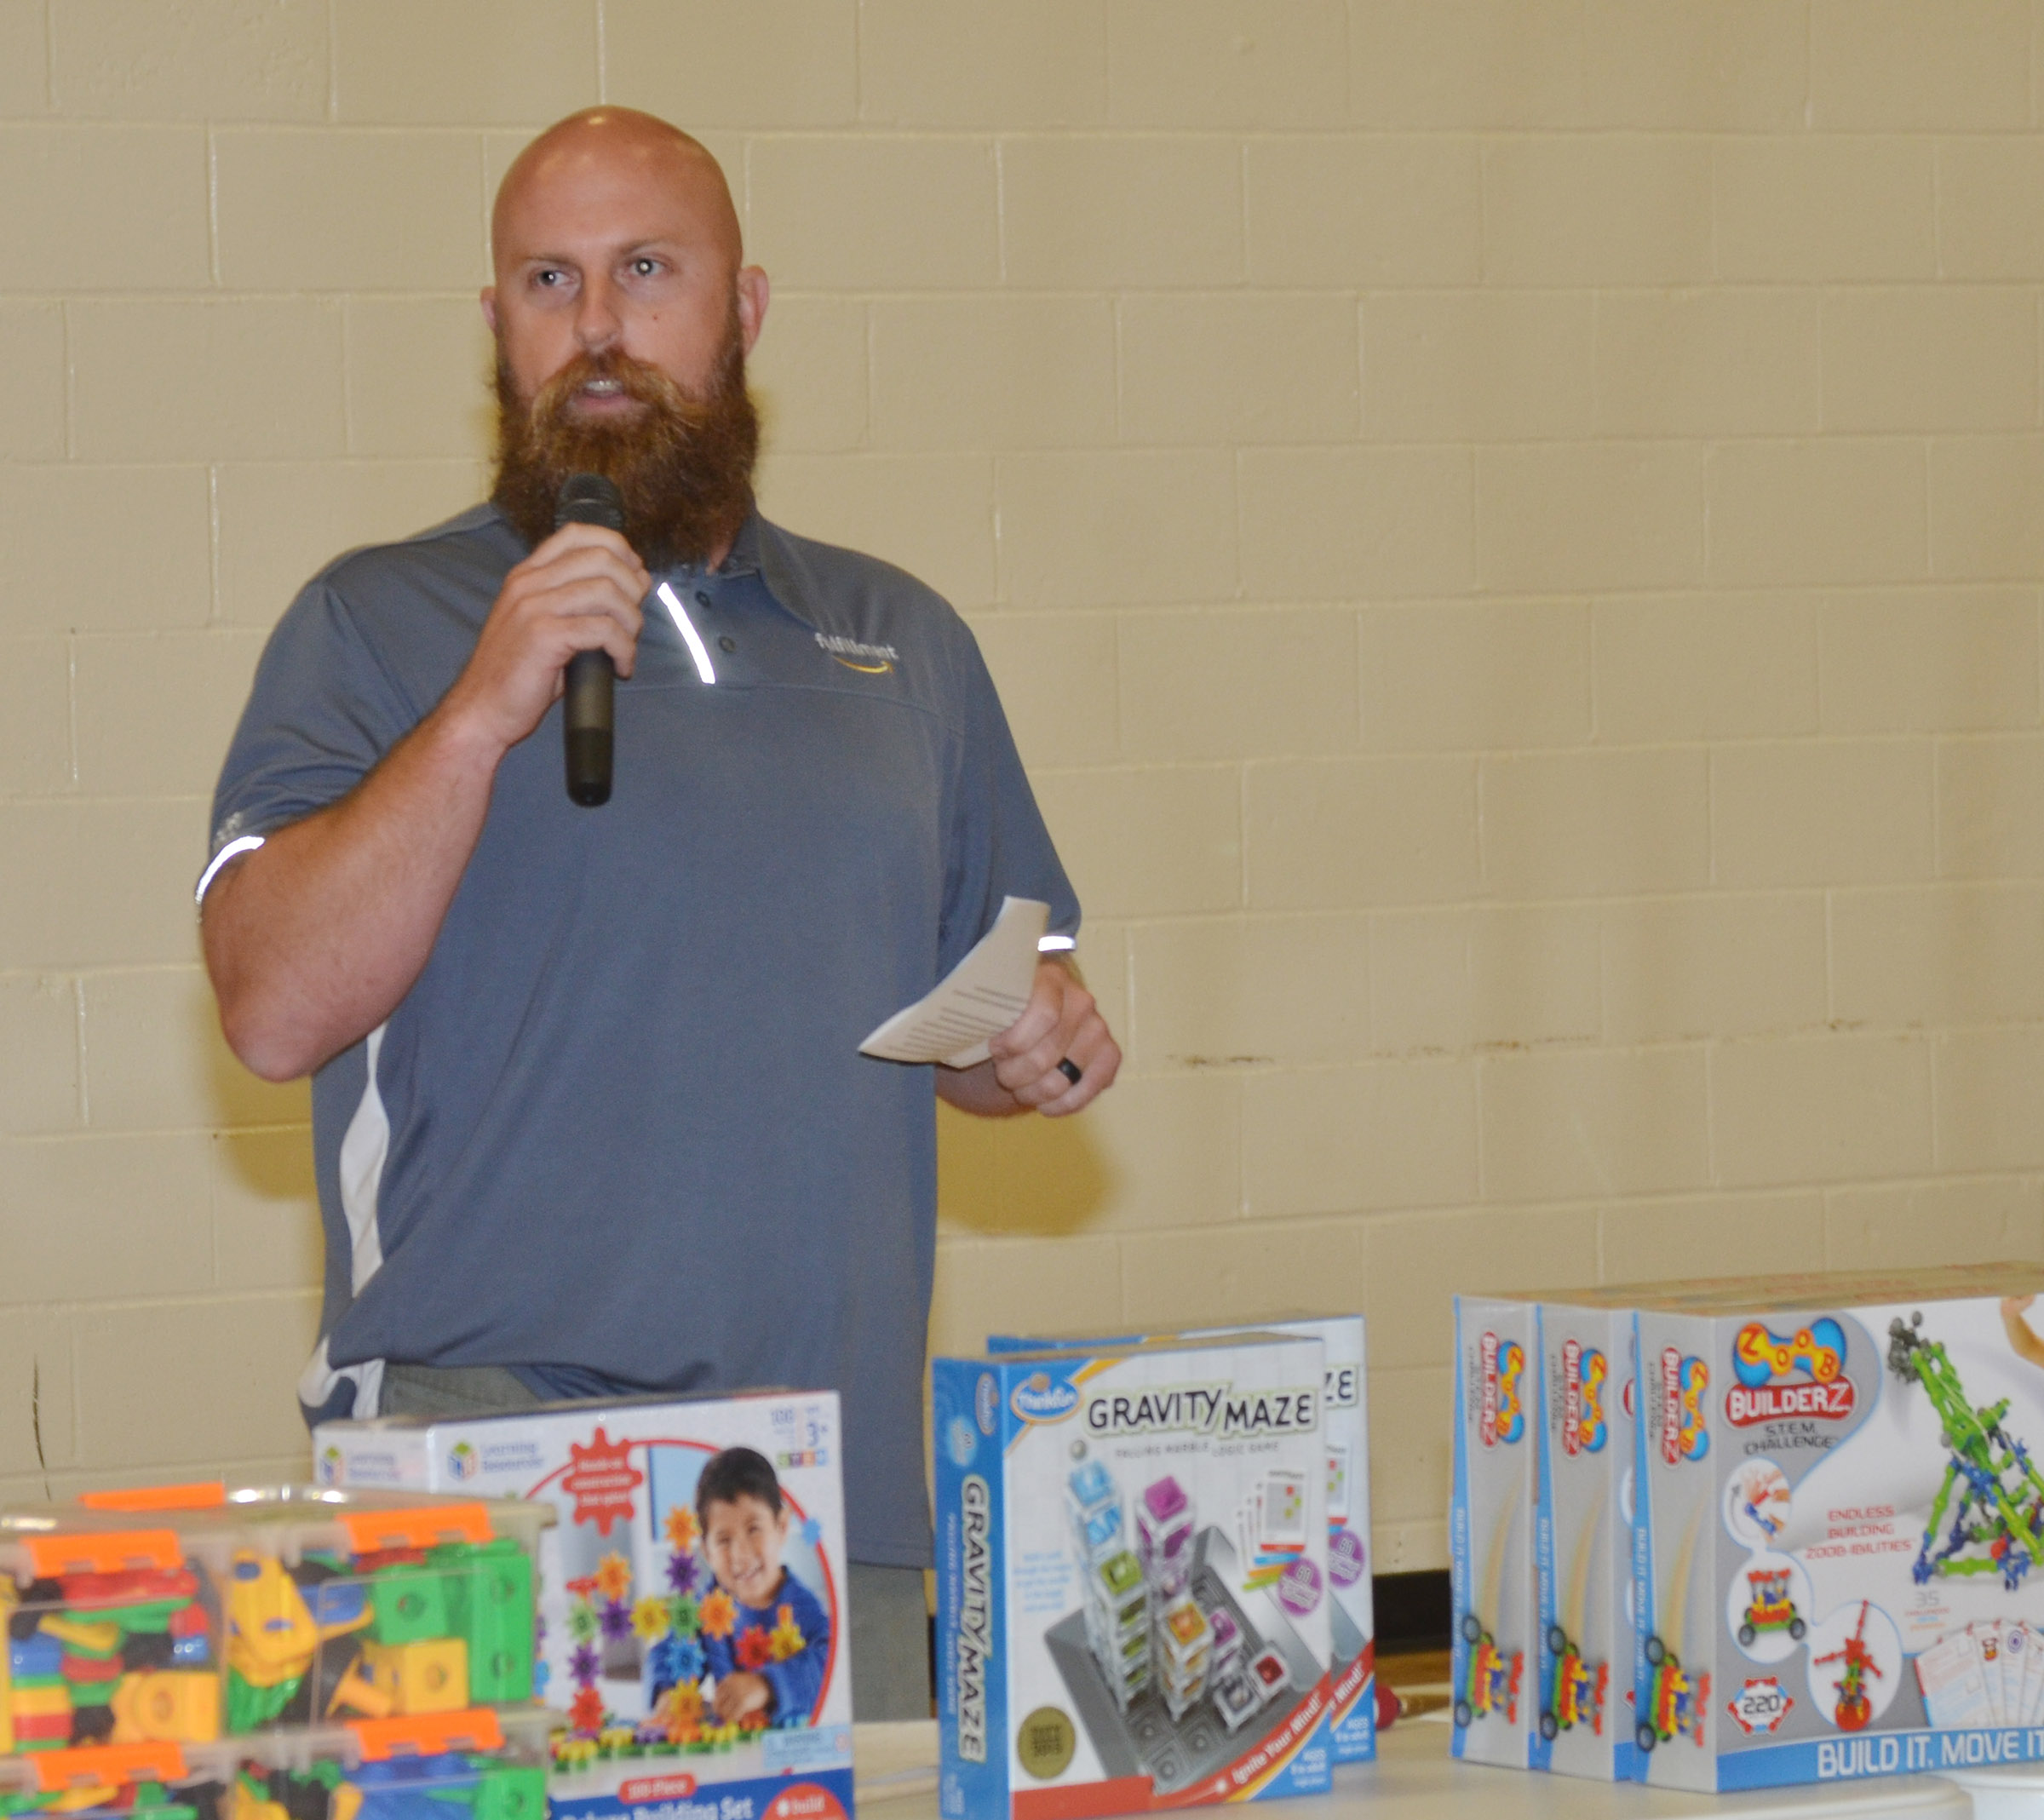 Chad Forsyth, an operations manager at Amazon, talks to CES students about the importance of science, technology, engineering and math.